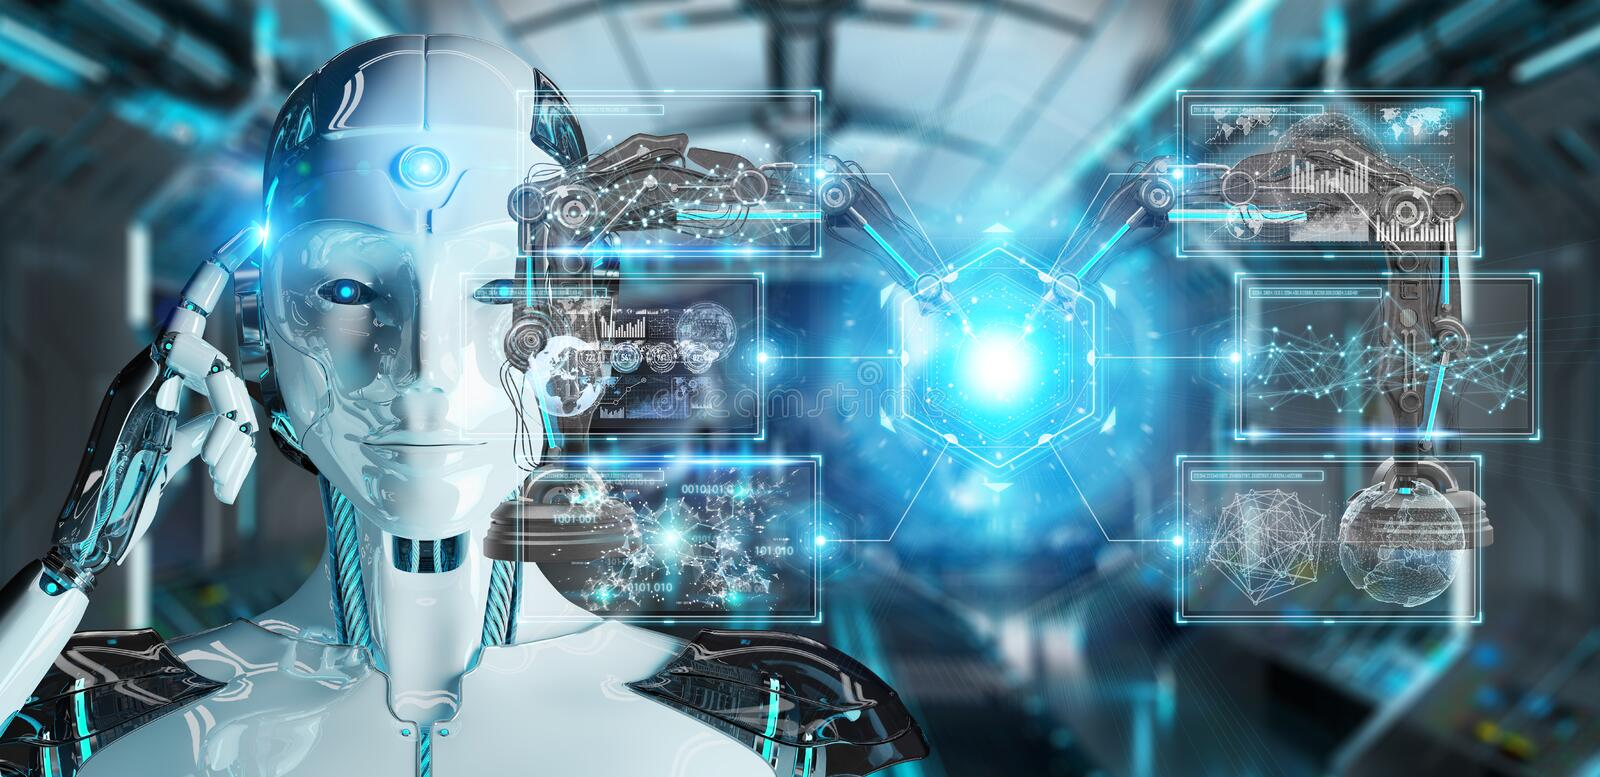 White woman robot using robotics arms with digital screen 3D rendering stock illustration